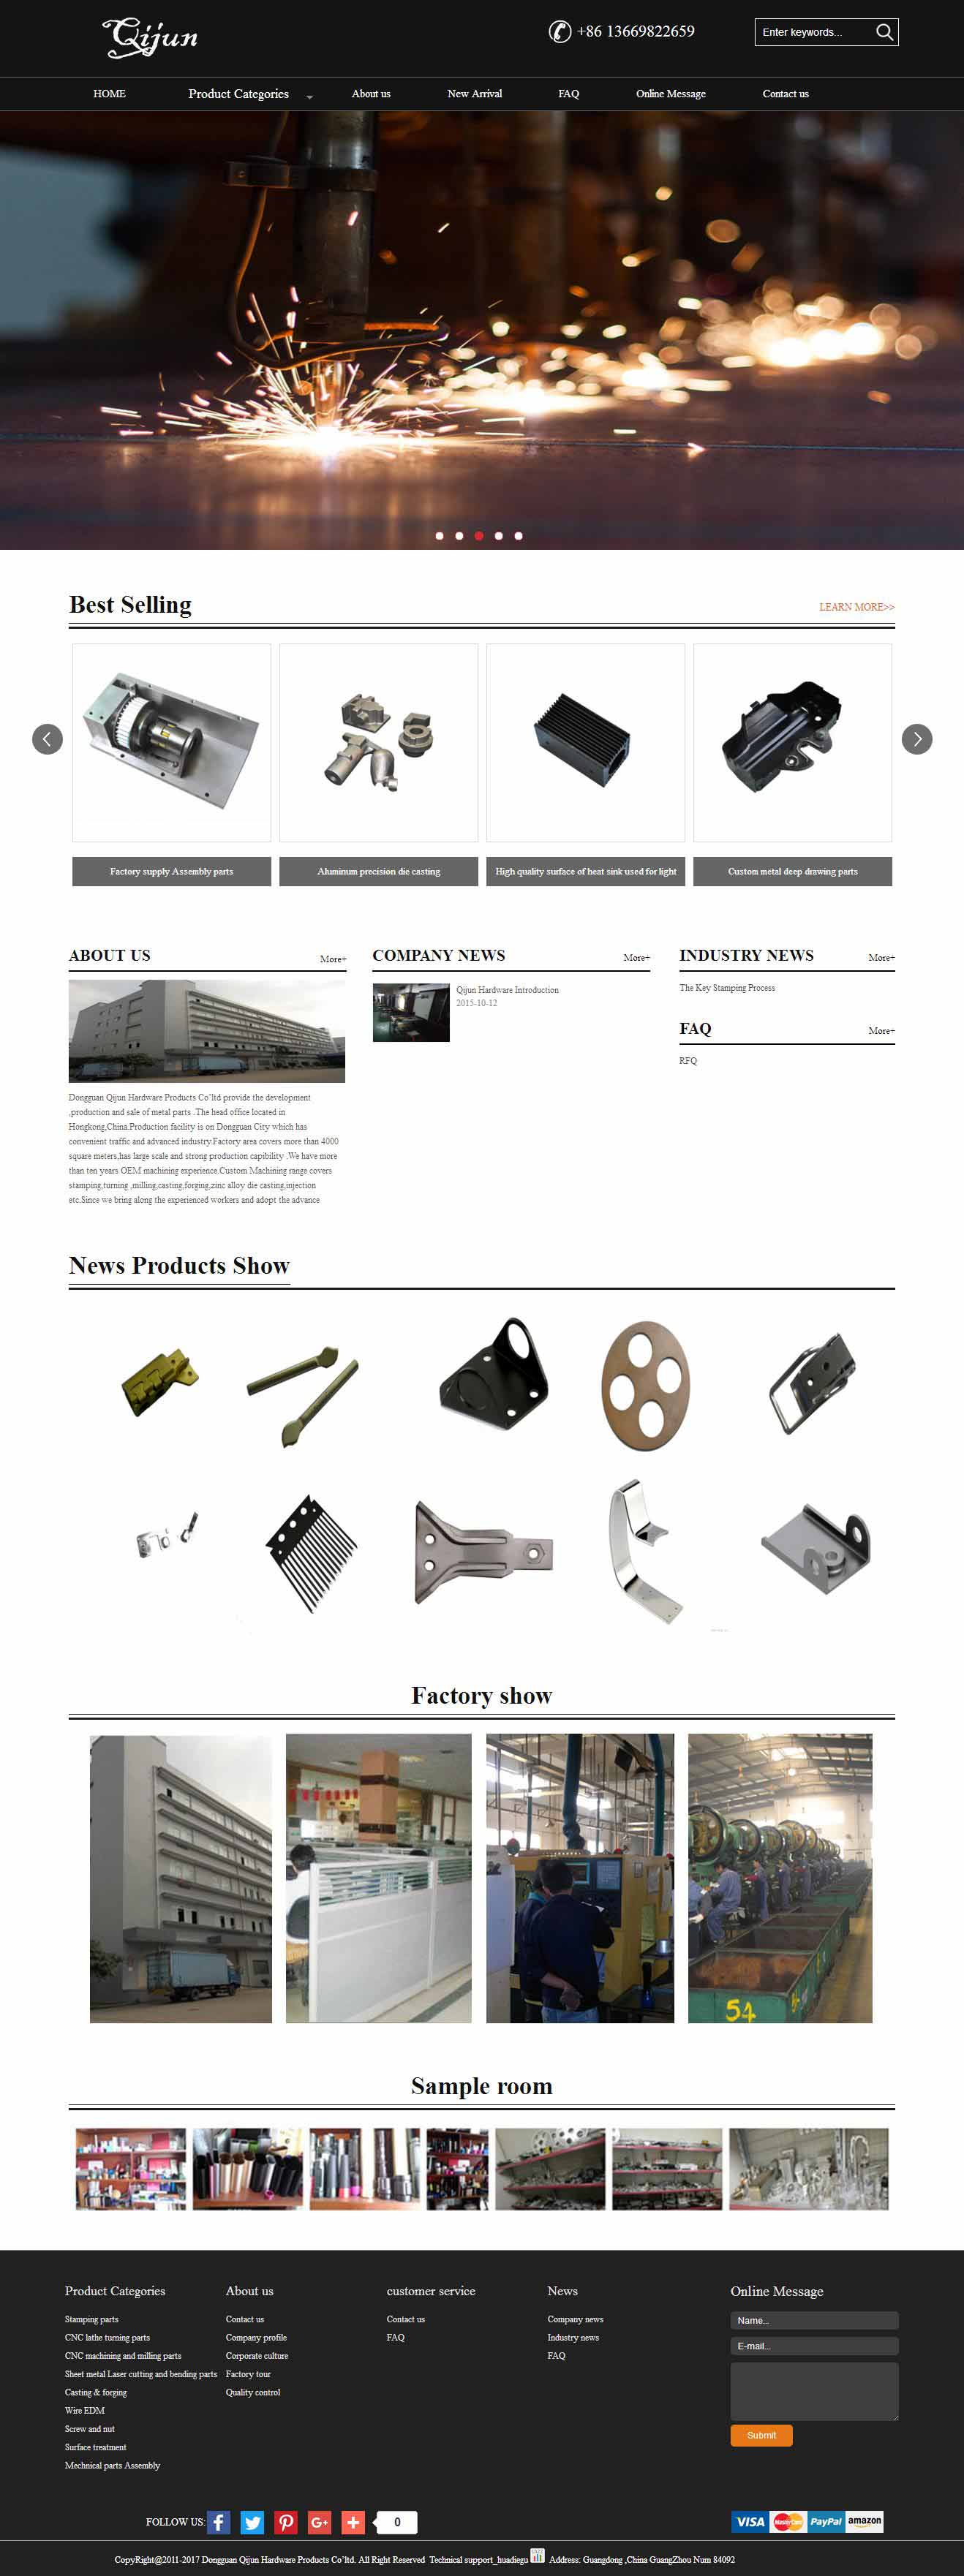 Dongguan Qijun Hardware Products Co'ltd